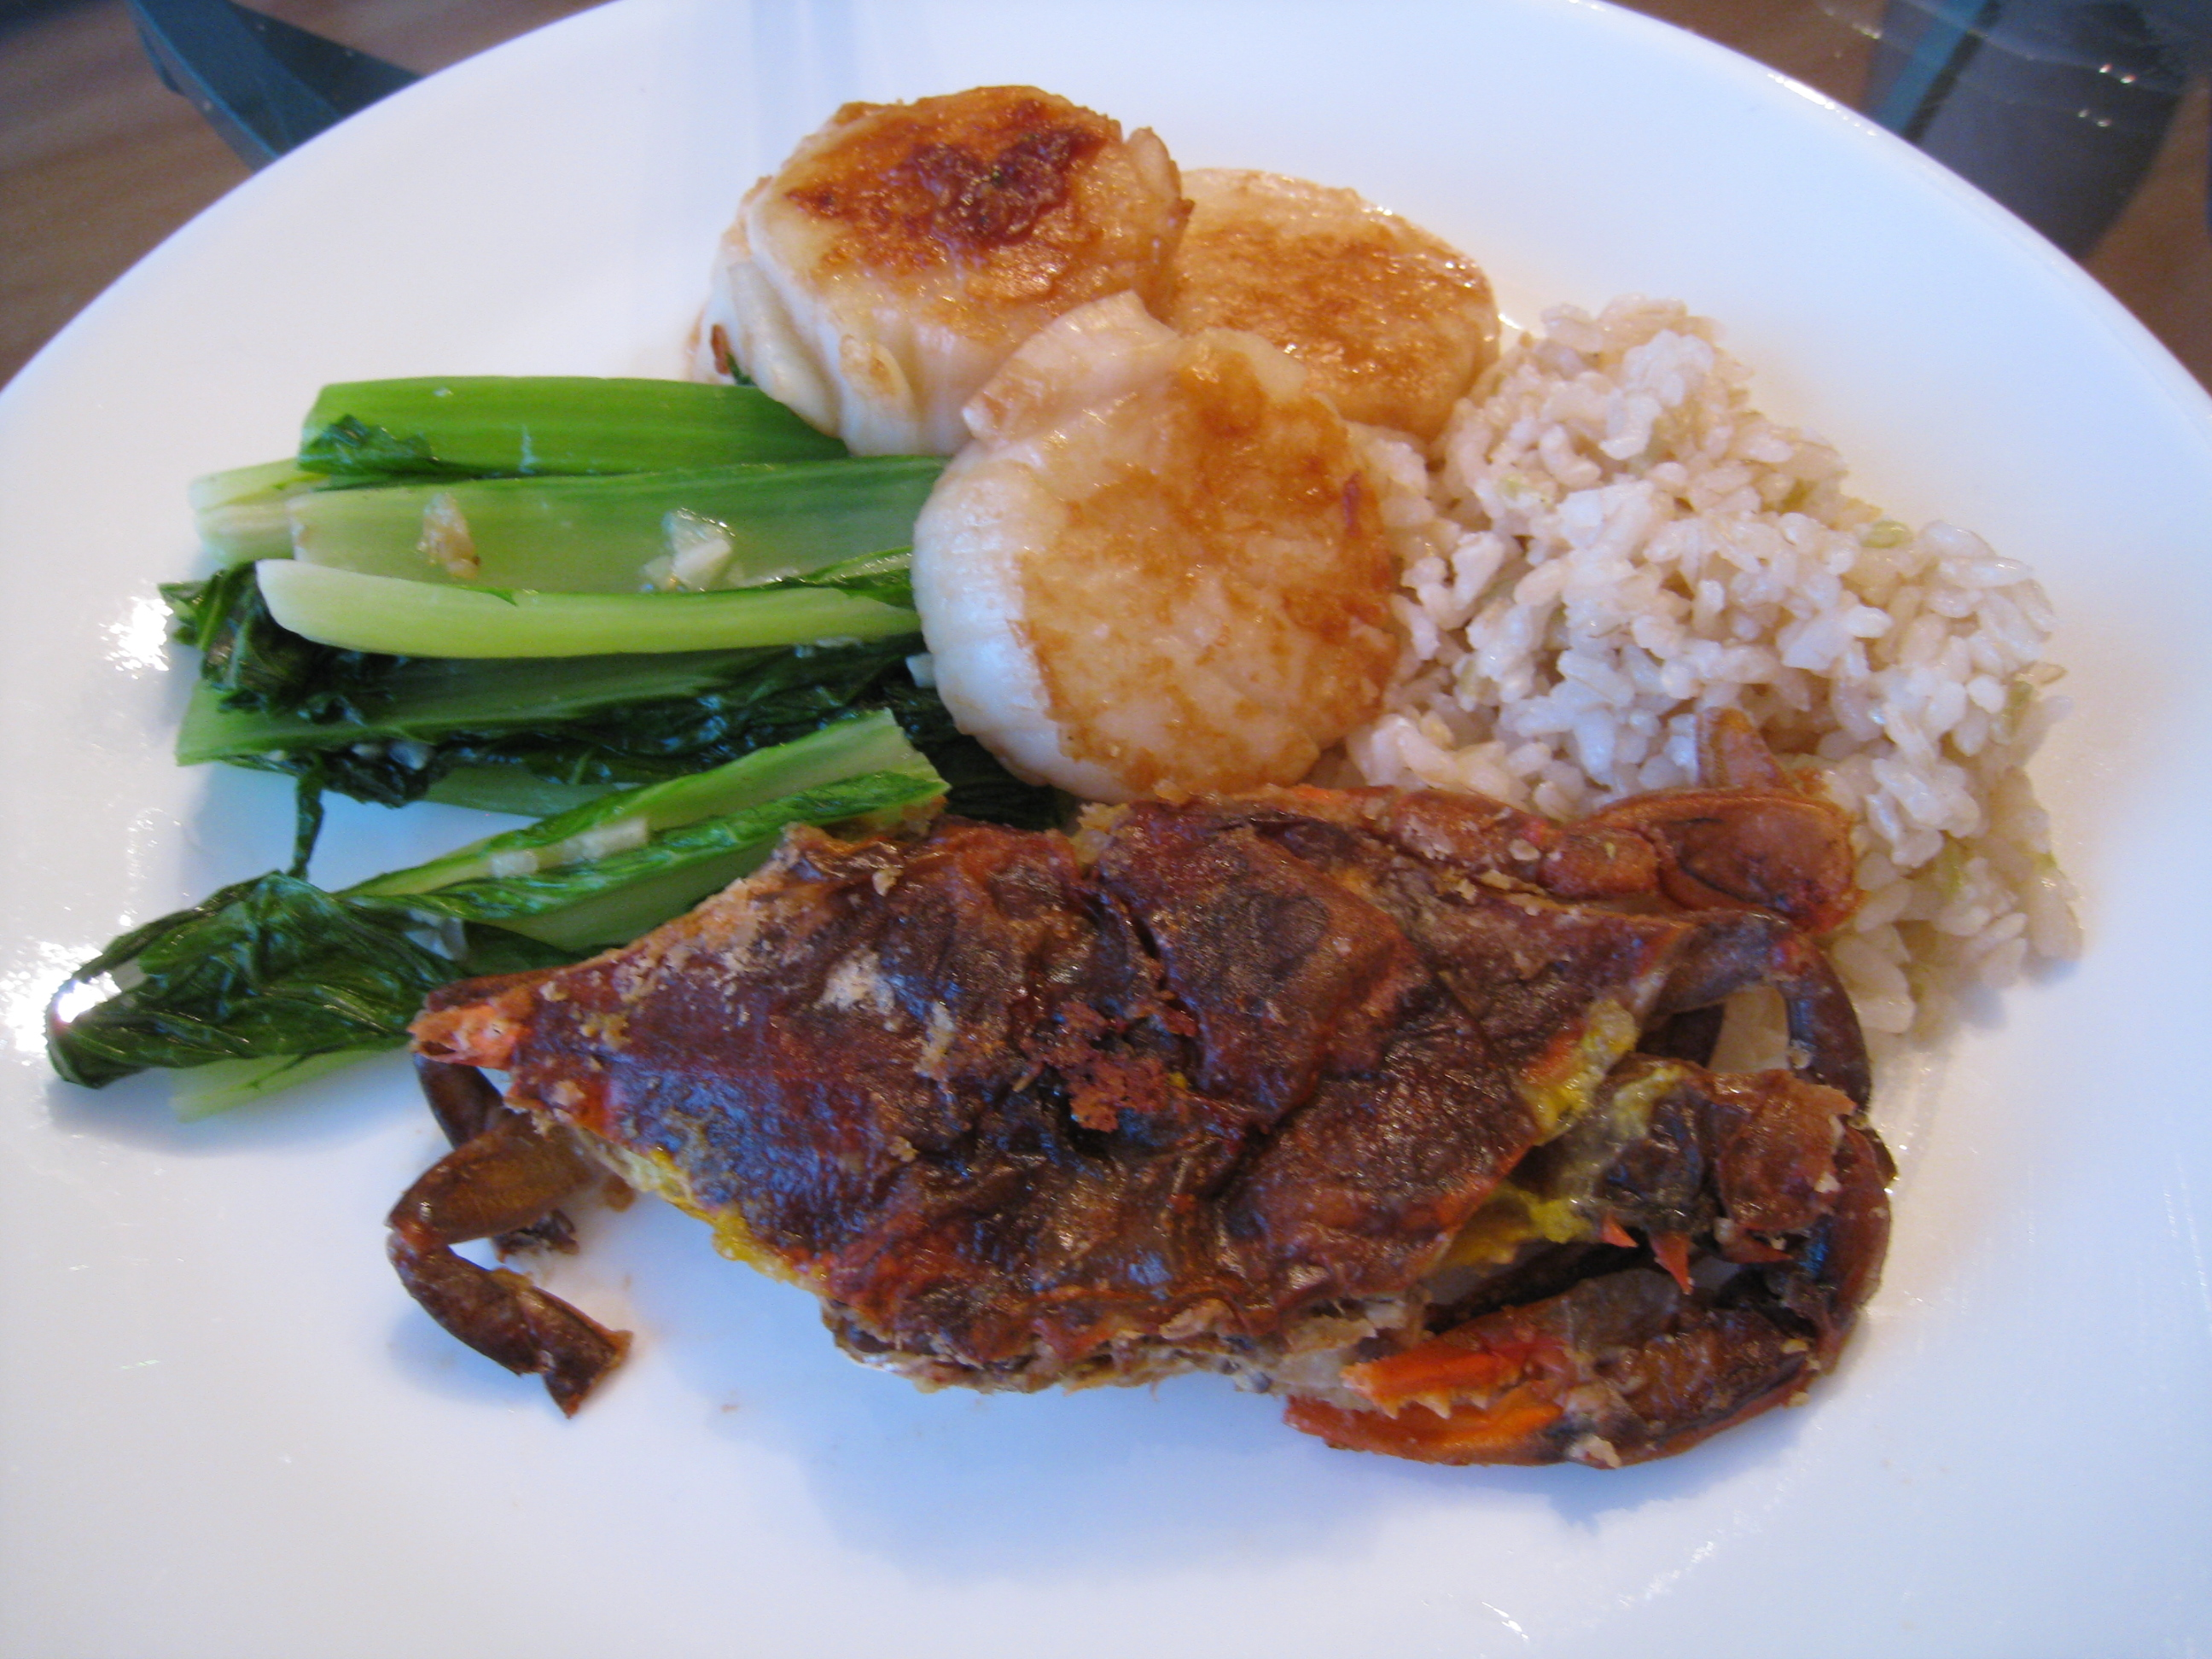 Panfried Soft-Shell Crabs